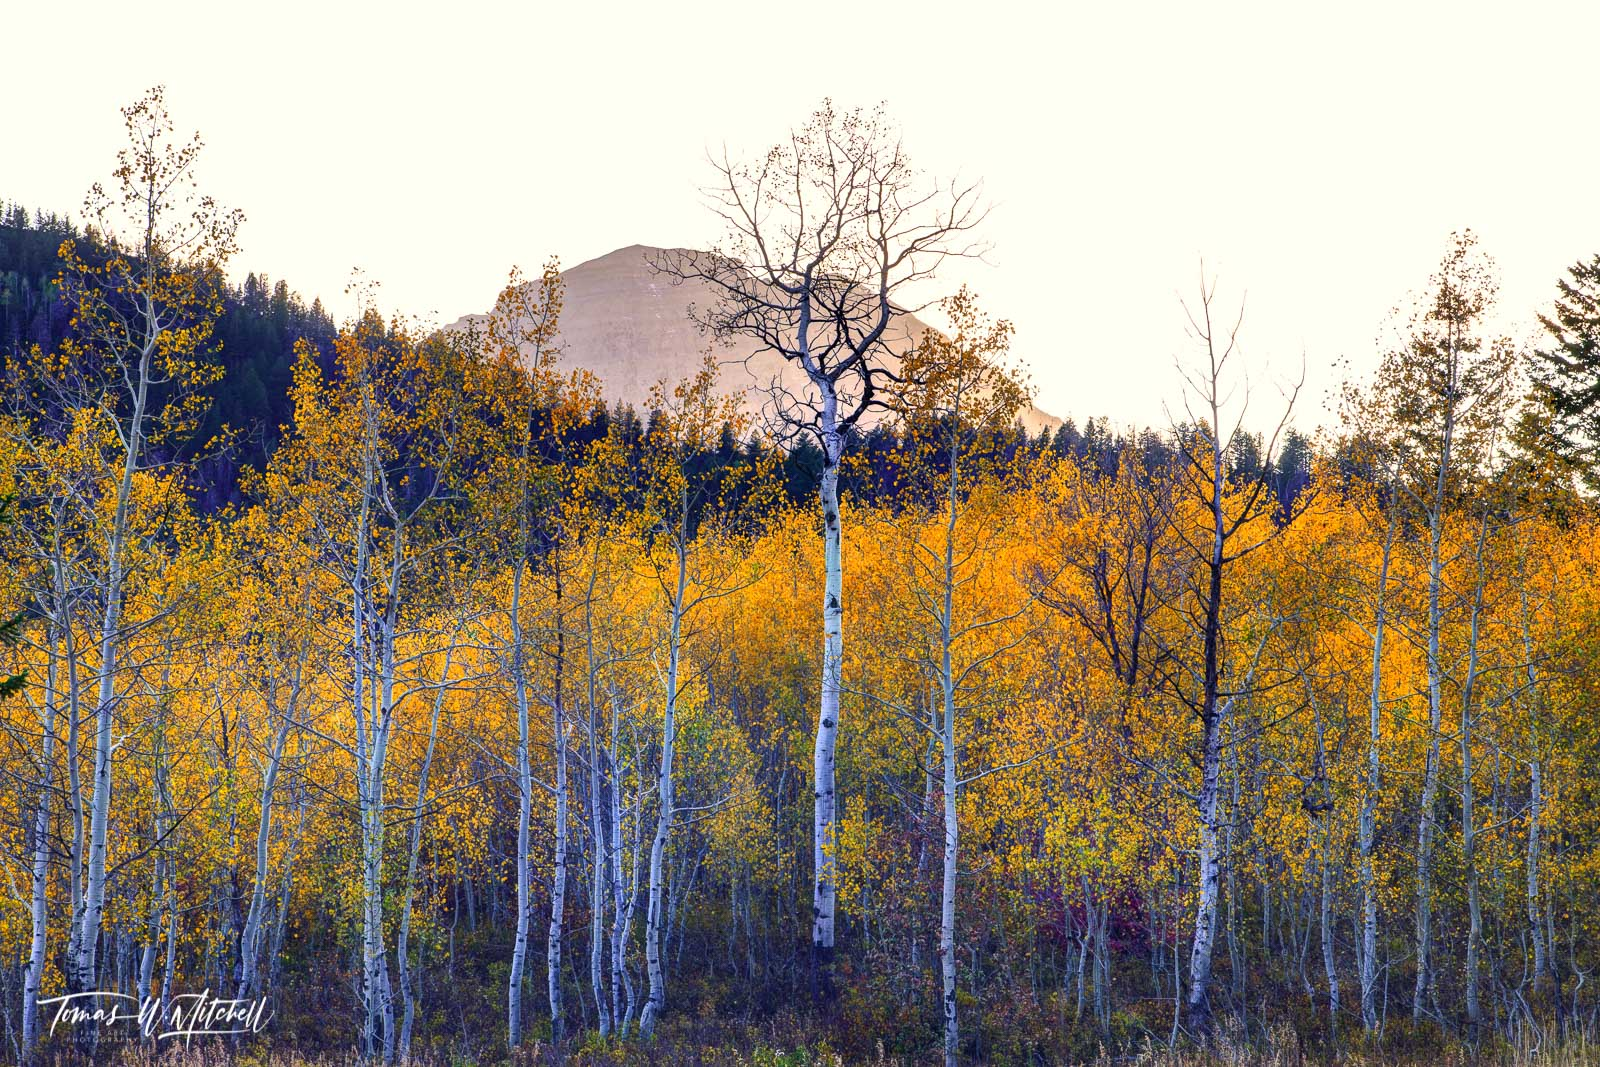 limited edition, museum grade, fine art, prints, alpine loop, utah, autumn, enchantment, photograph, evening, forest, mount timpanogos, bare trees, silhouetted, sky, trees, aspen trees, yellow, photo